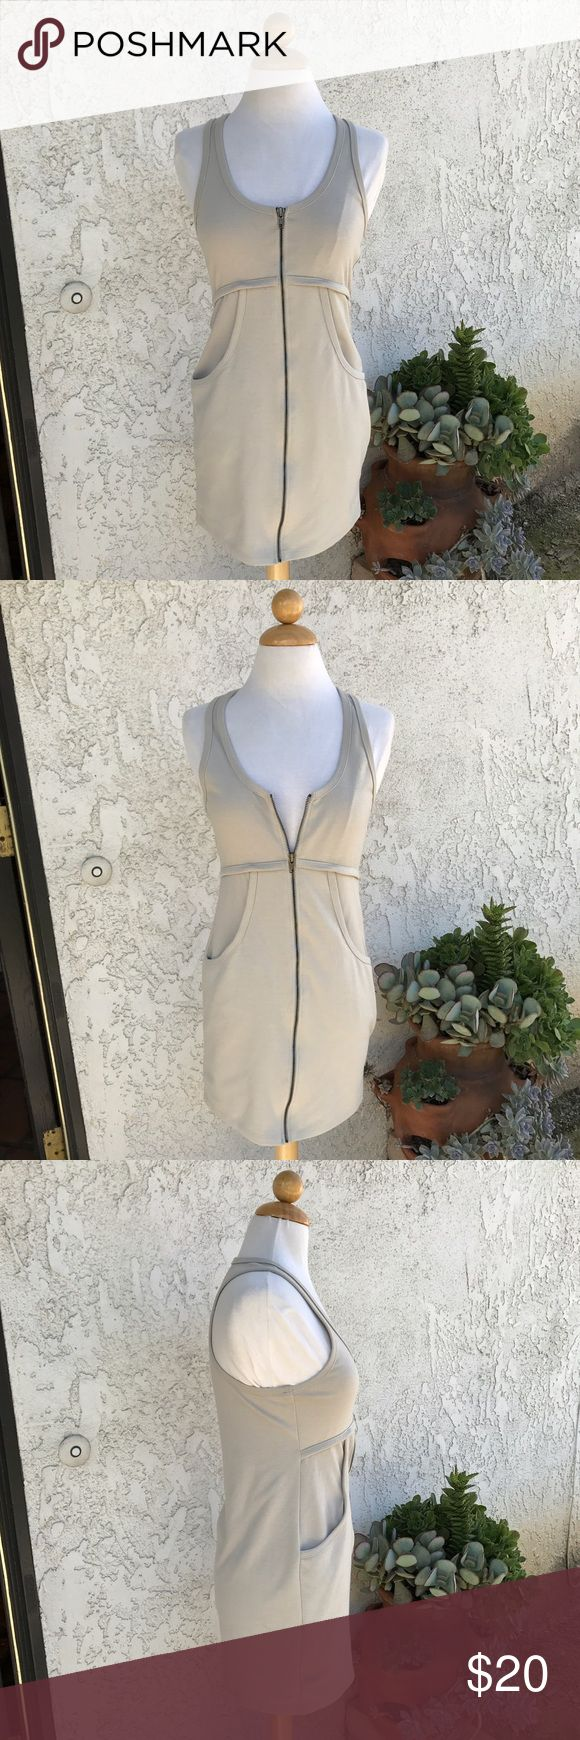 Honey Punch cream nude zip-up dress Honey Punch cream nude zip-up dress in a size medium. Such a cute causal dress to wear out. Great condition! Honey Punch Dresses